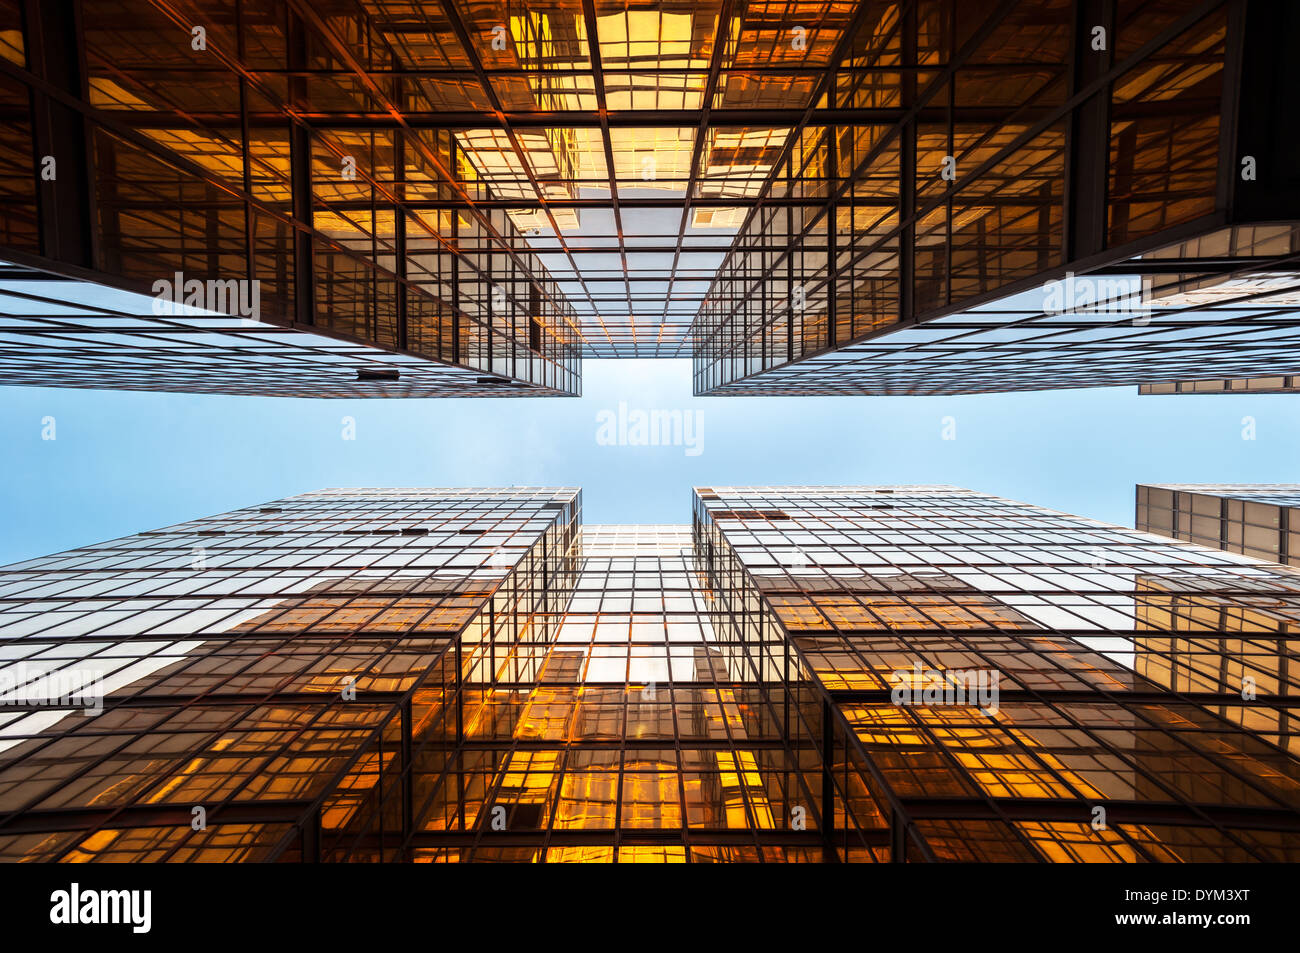 Symmetrical mirrored office buildings, Hong Kong - Stock Image